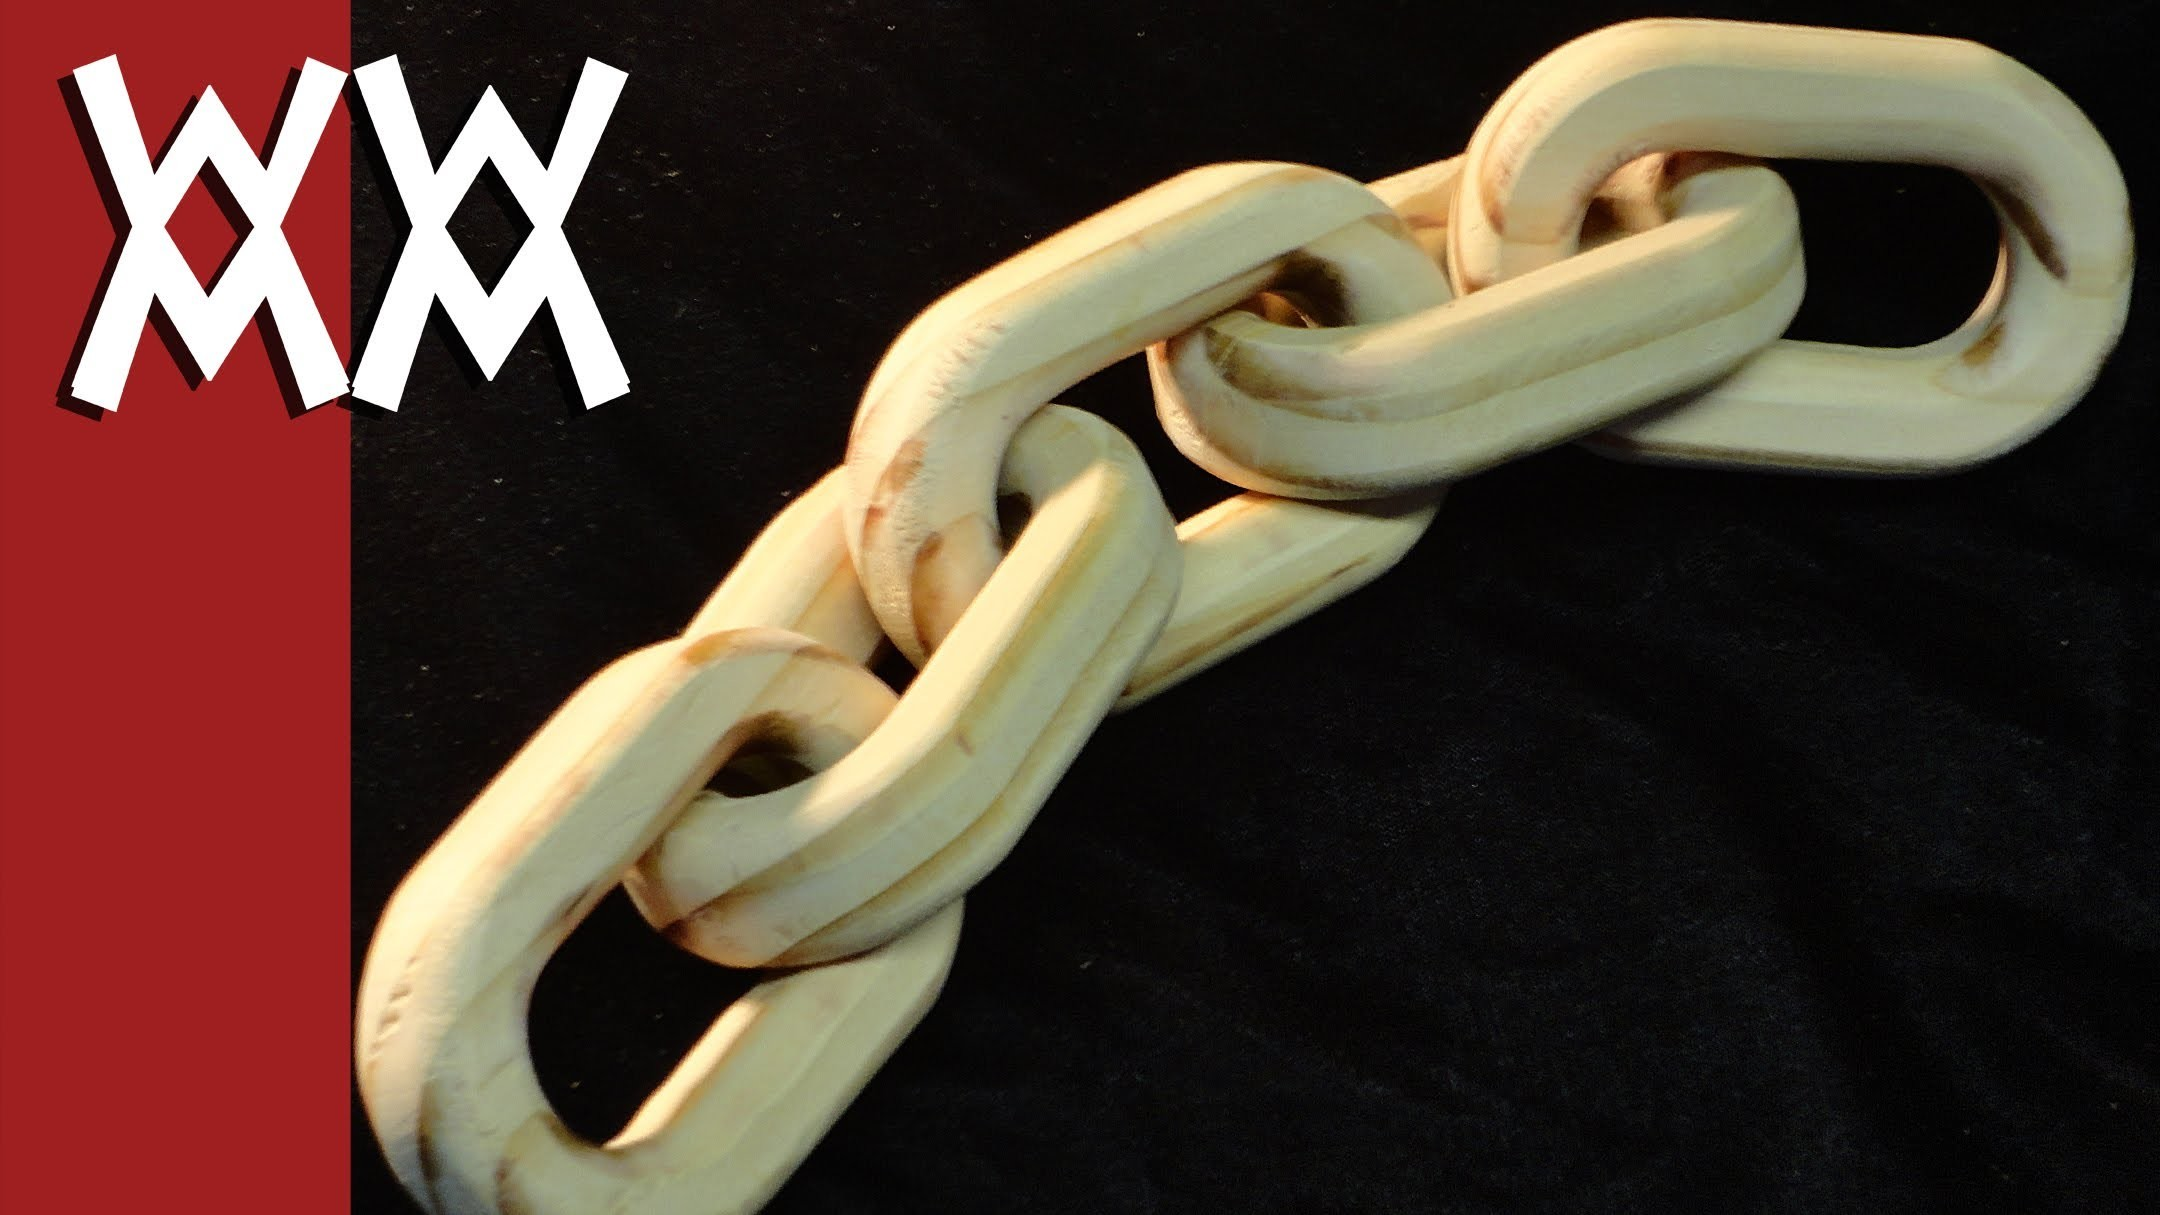 Make a wood chain using a router